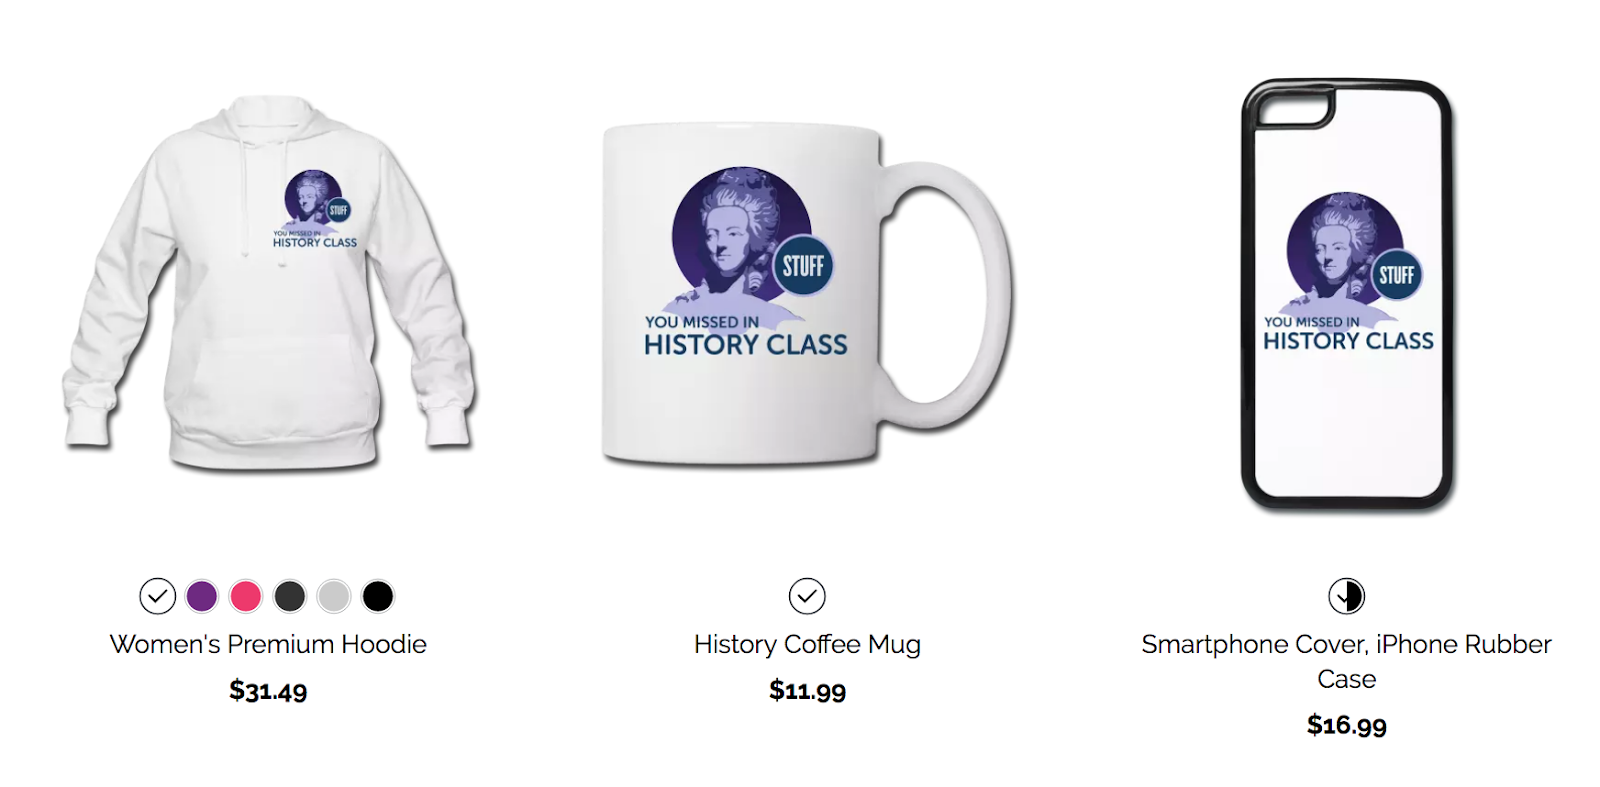 Stuff You Missed in History Class merchandise options